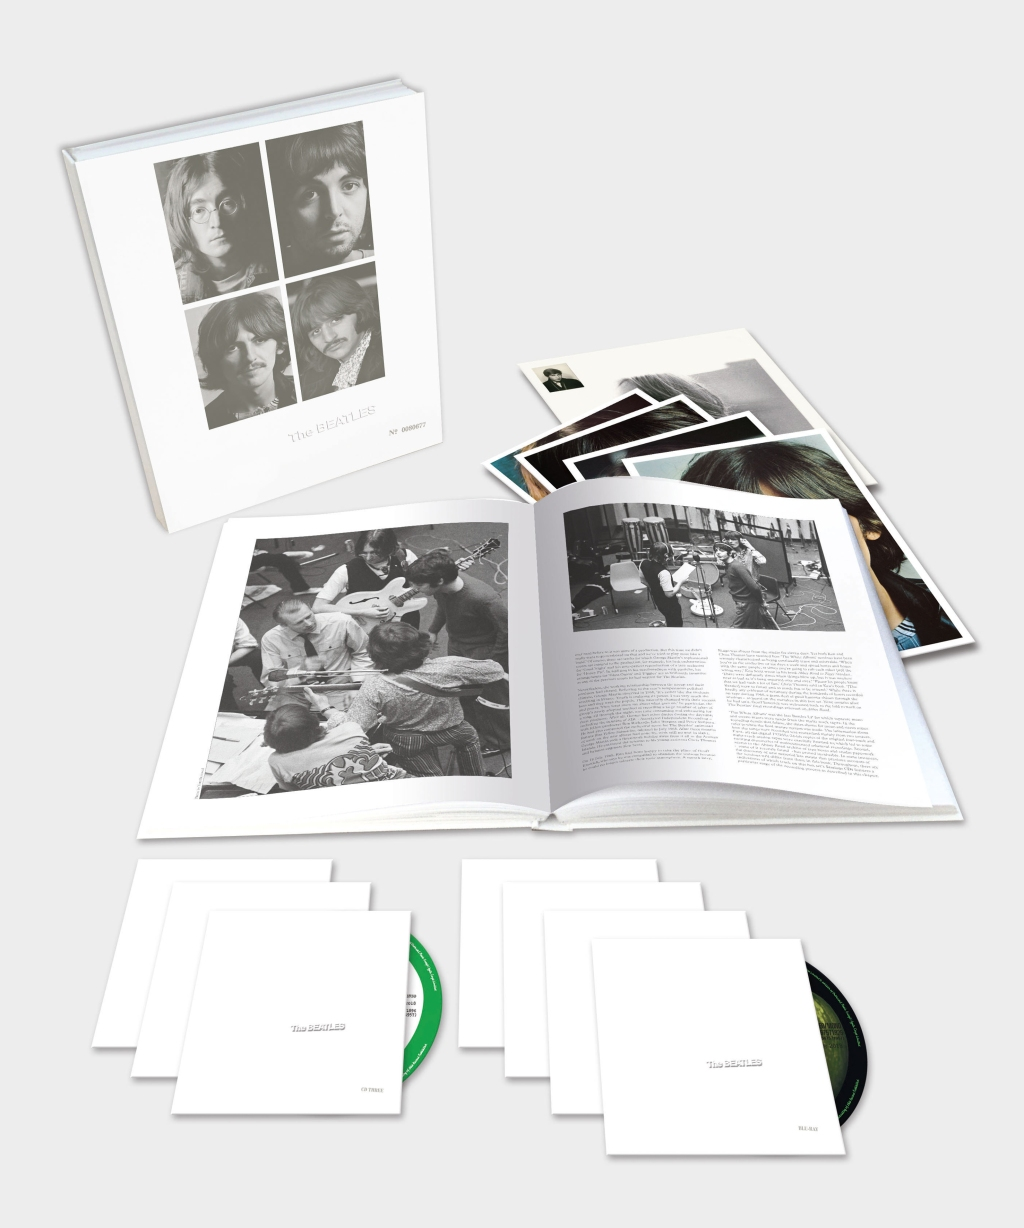 Four discs of demos in this stunning reissue take you inside the -creative frenzy that fueled the Beatles' legendary 1968 double album. thebeatlesstore.com $160